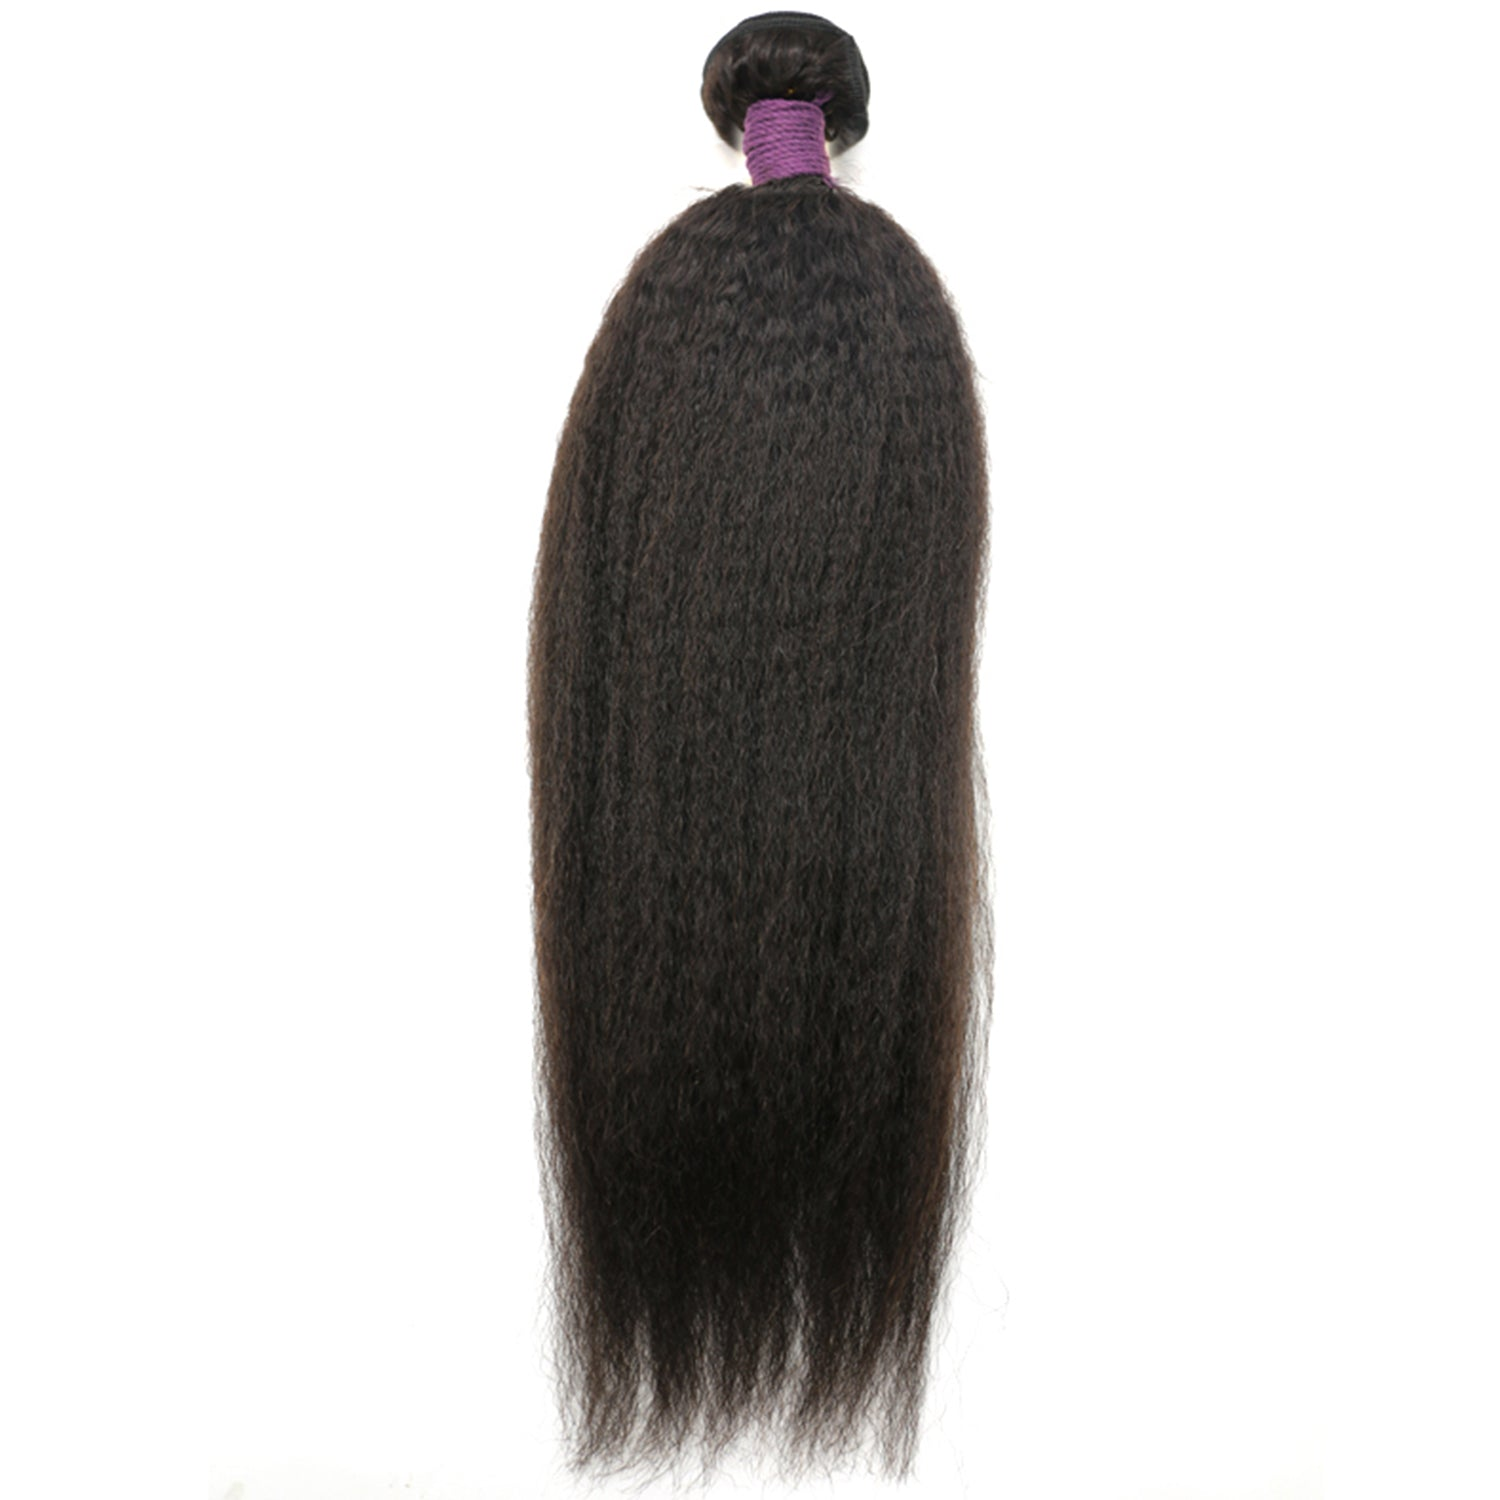 Relaxed Straight - Royal Collection 7A